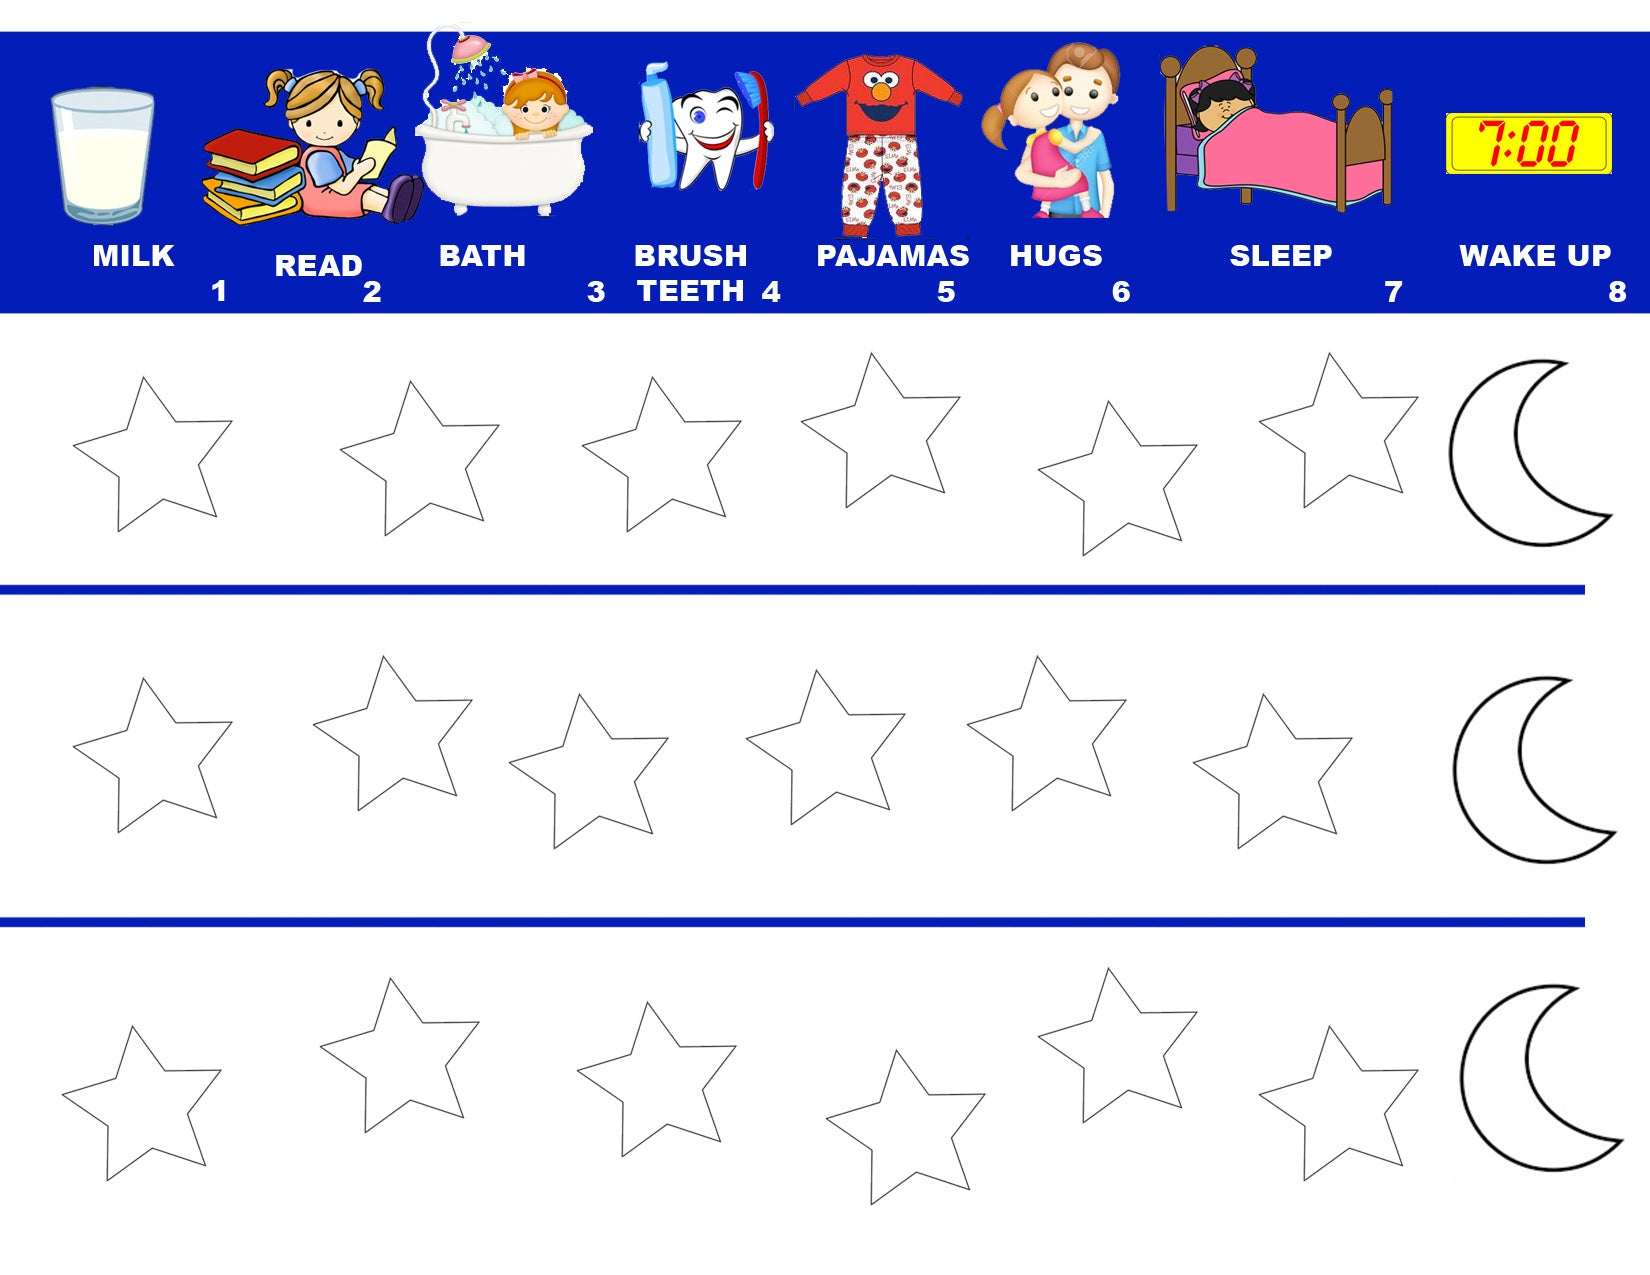 photo relating to Bedtime Routine Chart Printable called Free of charge Bedtime Program Chart - Mi LegaSi